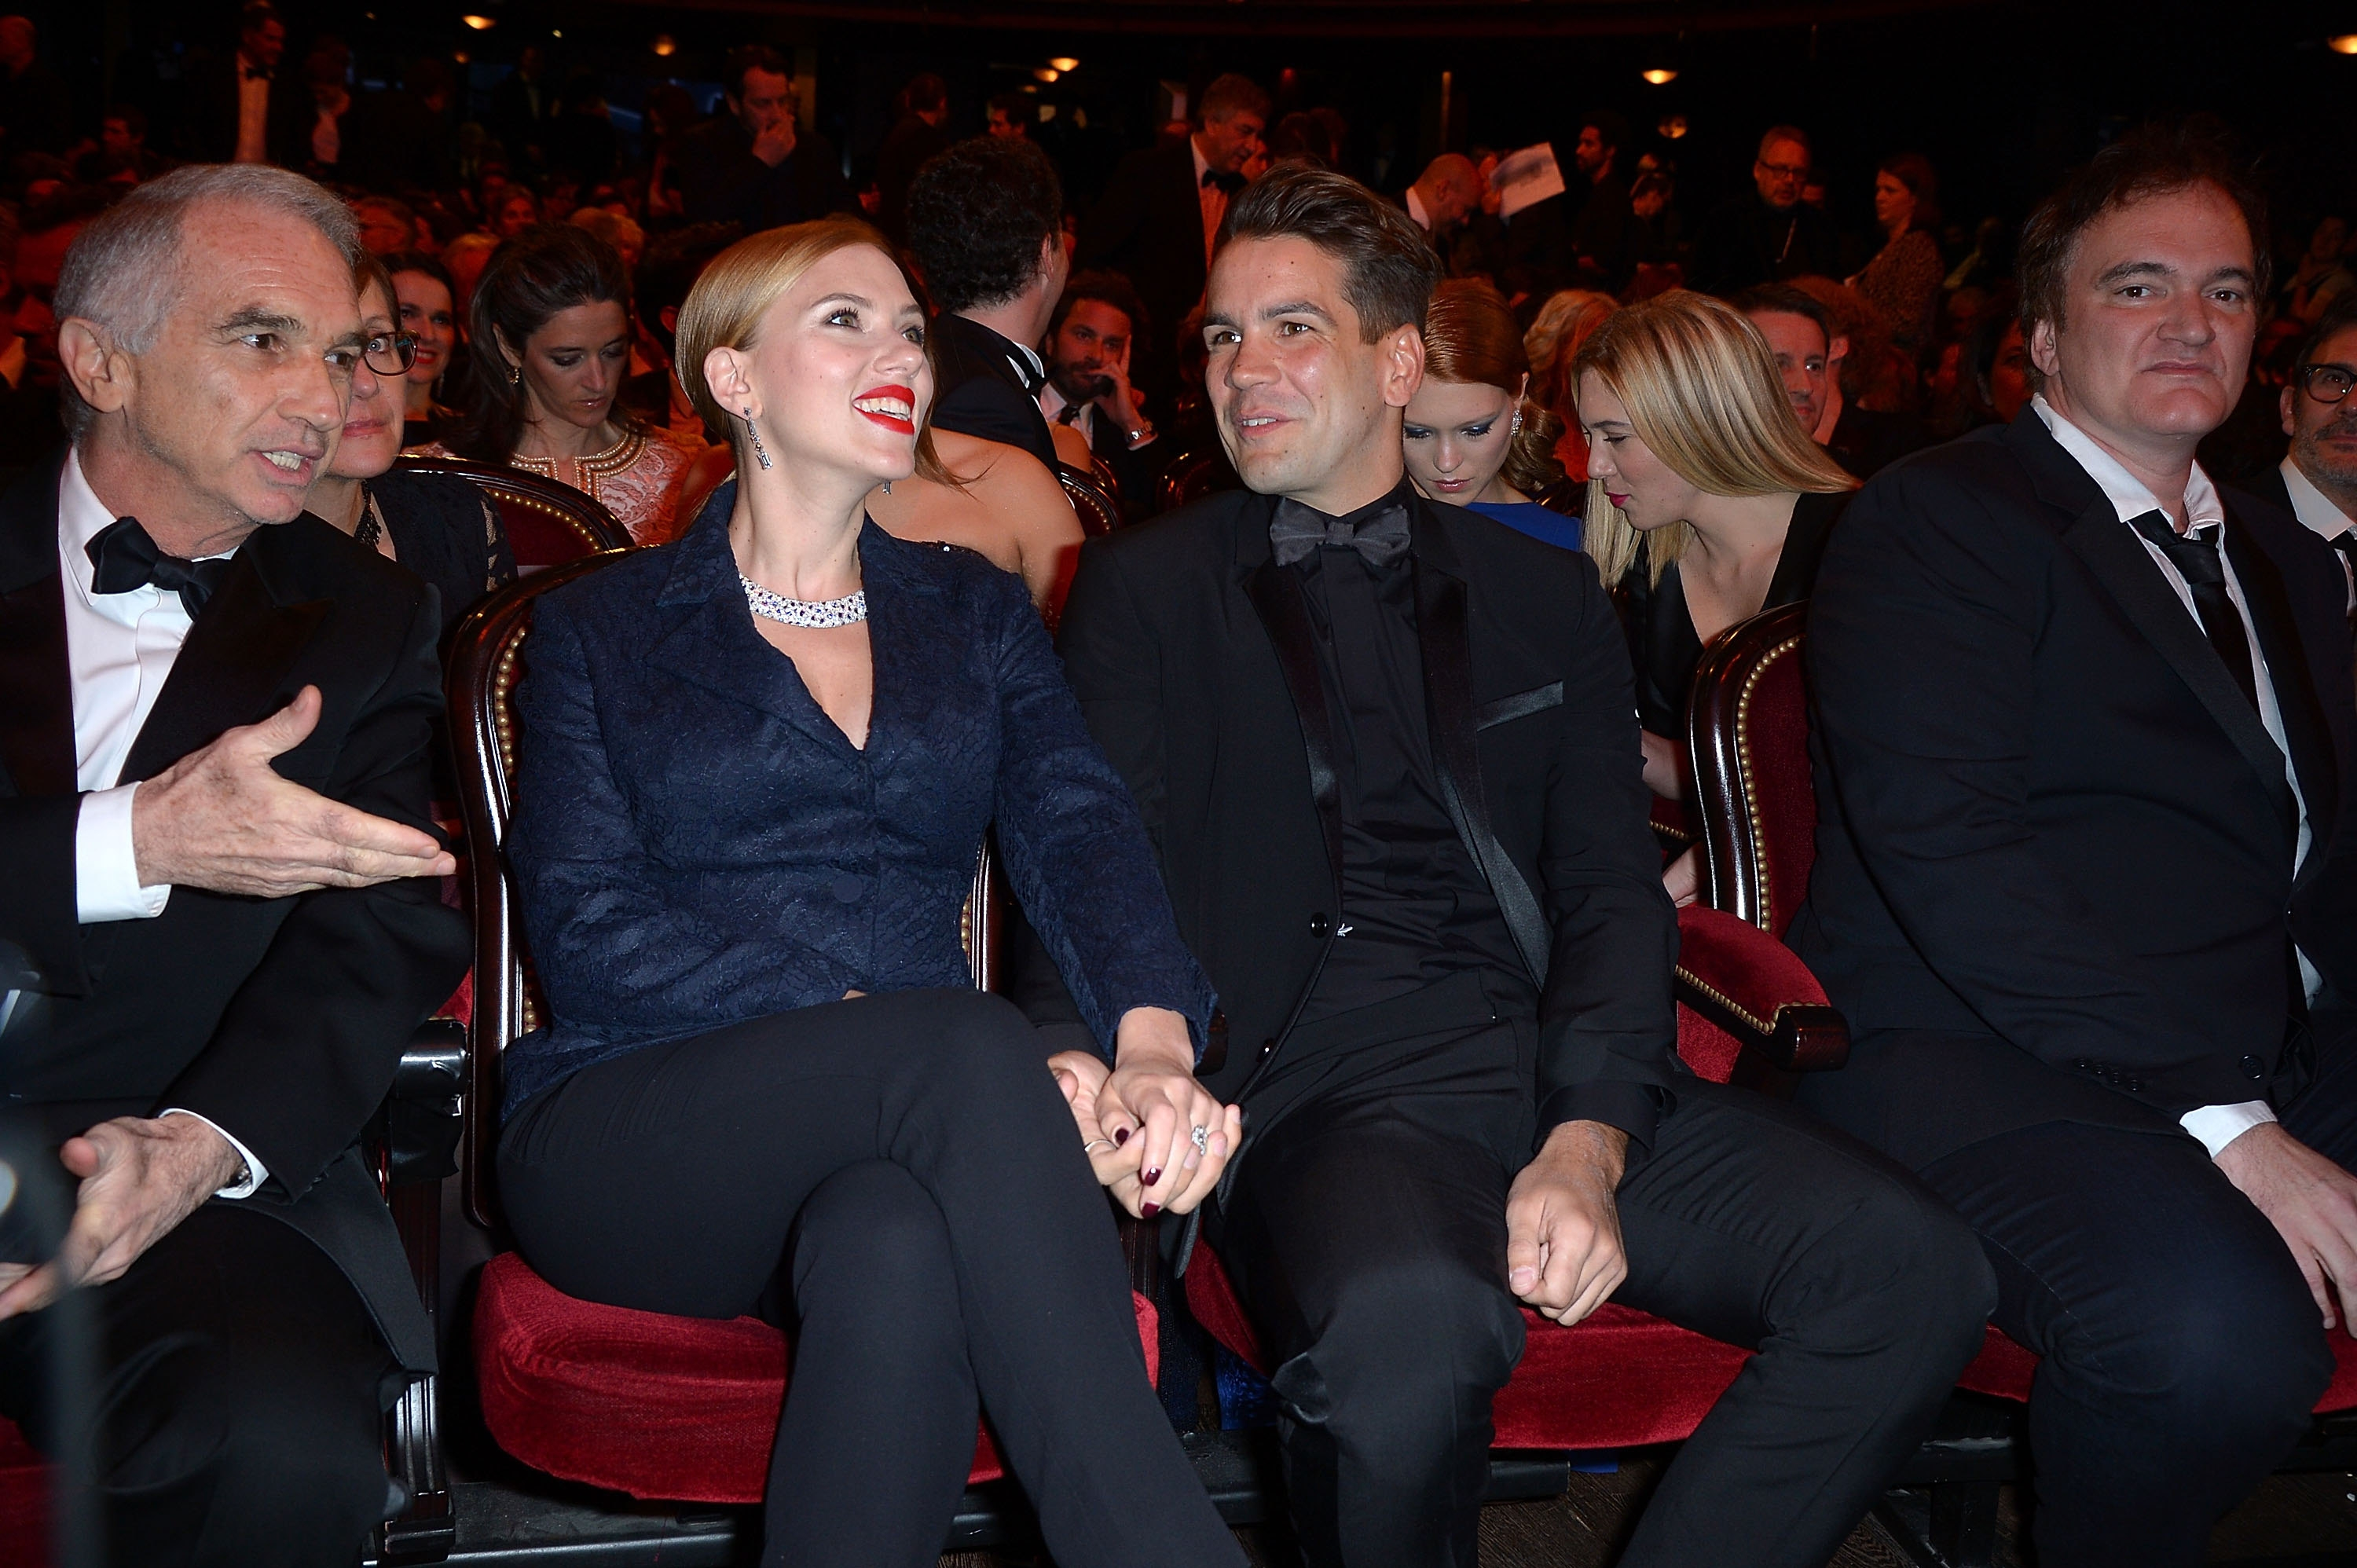 Scarlett Johansson was in Paris Friday with Romain Dauriac to accept a lifetime achievement award at the 39th Cesar Film Awards 2014 at Theatre du Chatelet.